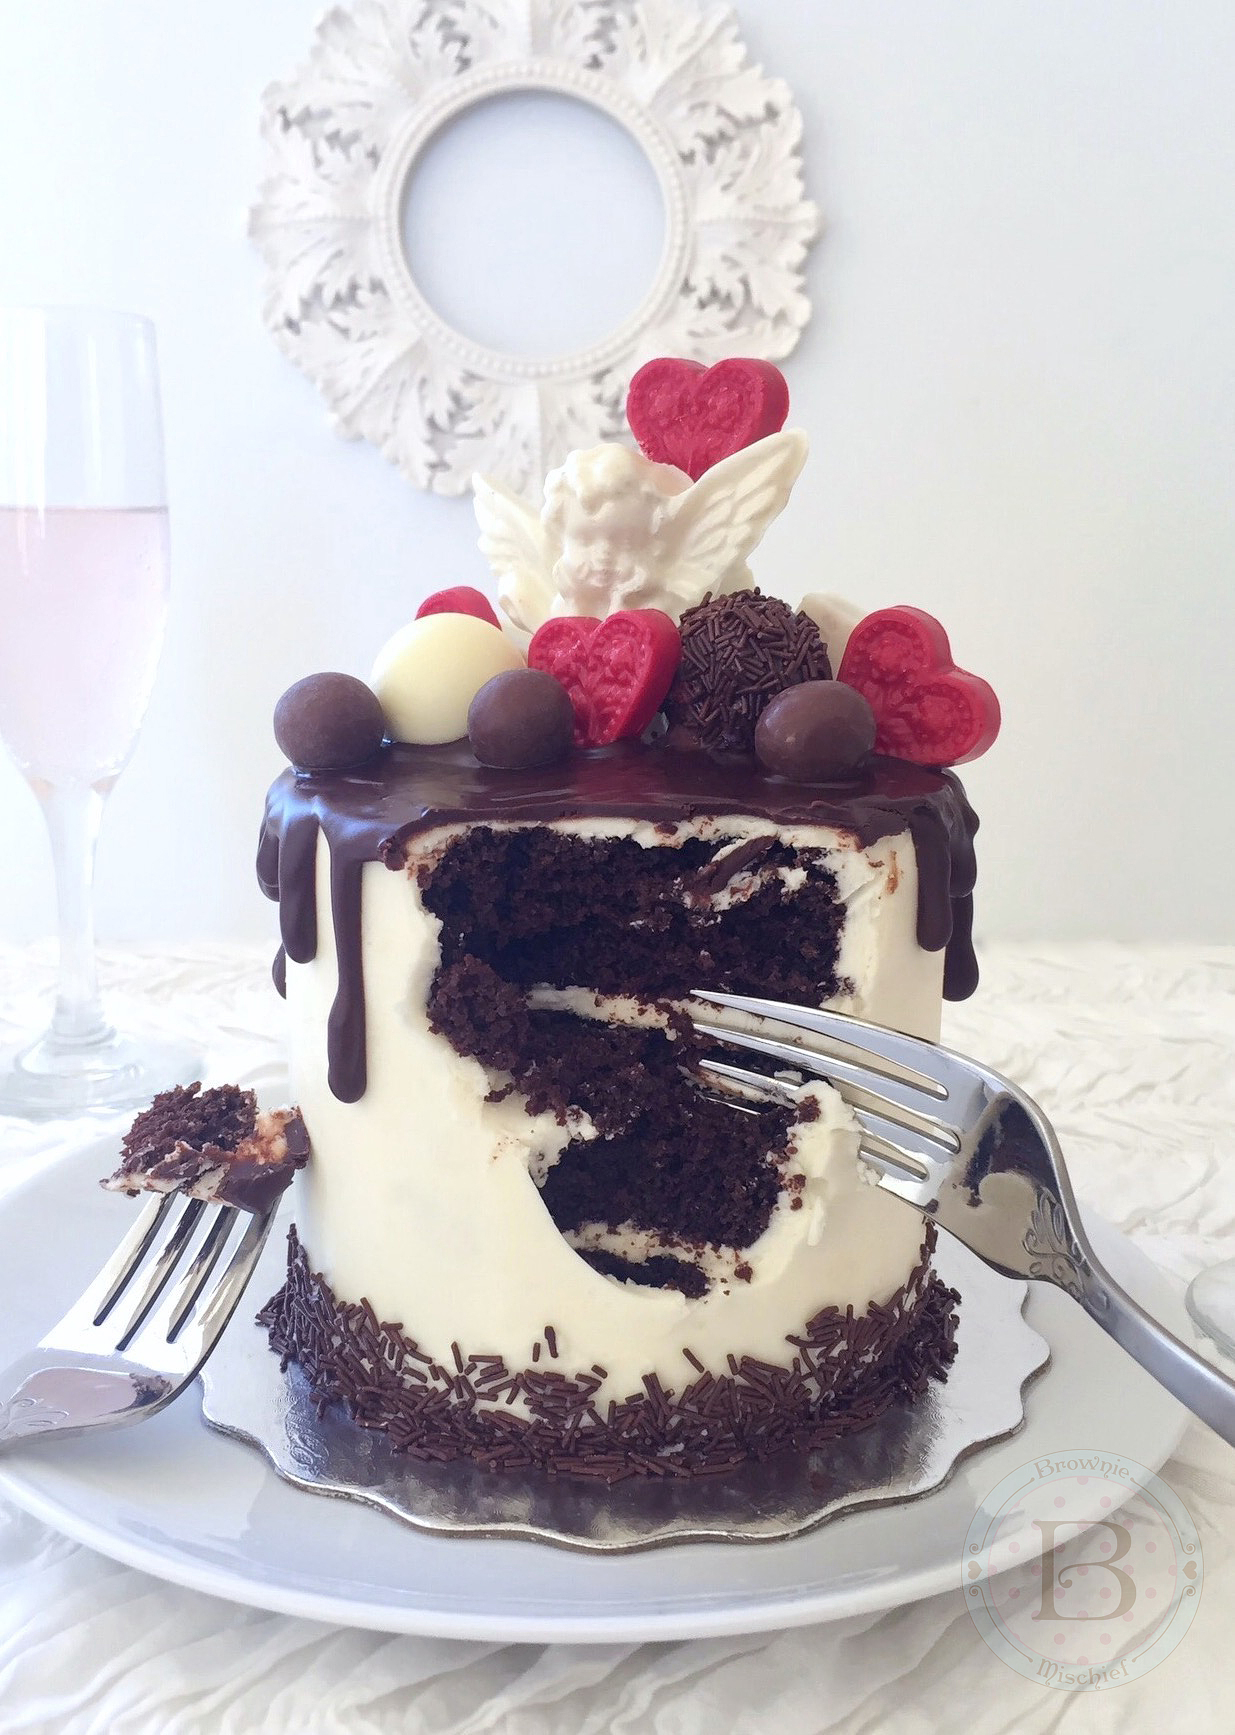 Chocolate Lovers' Valentine Drip Cake for Two